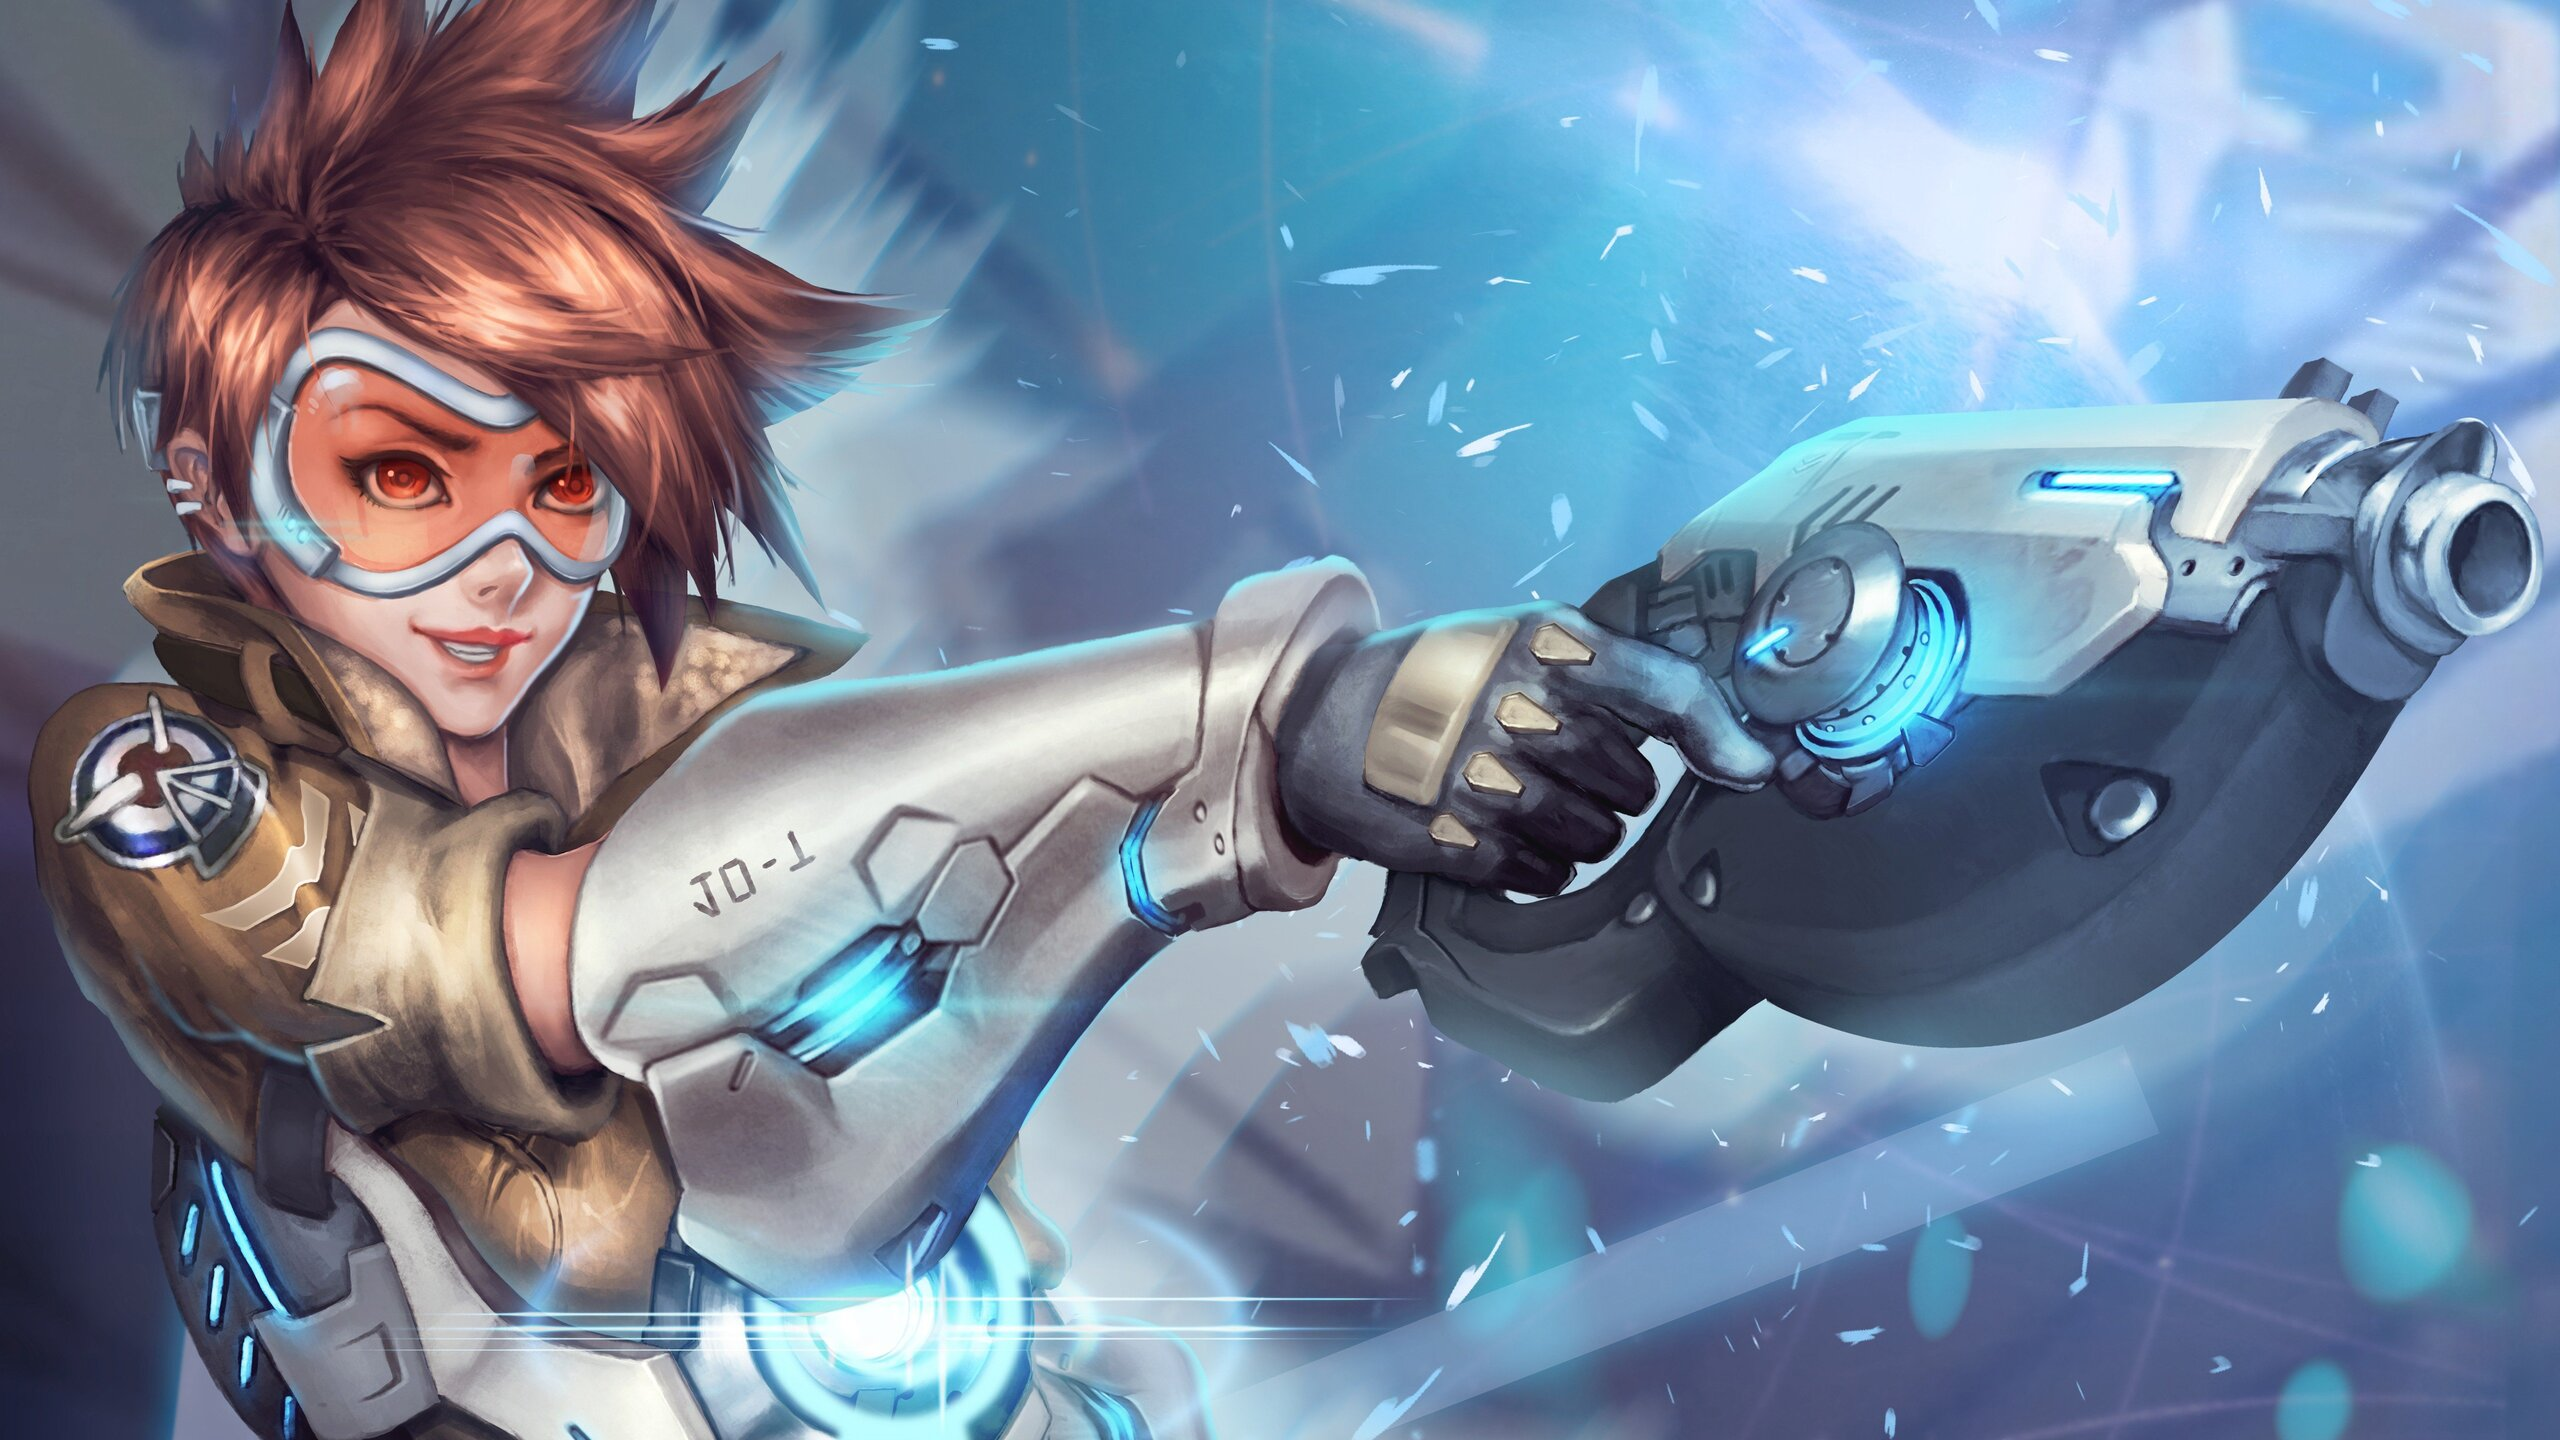 2560x1440 Tracer Overwatch 1440p Resolution Hd 4k Wallpapers